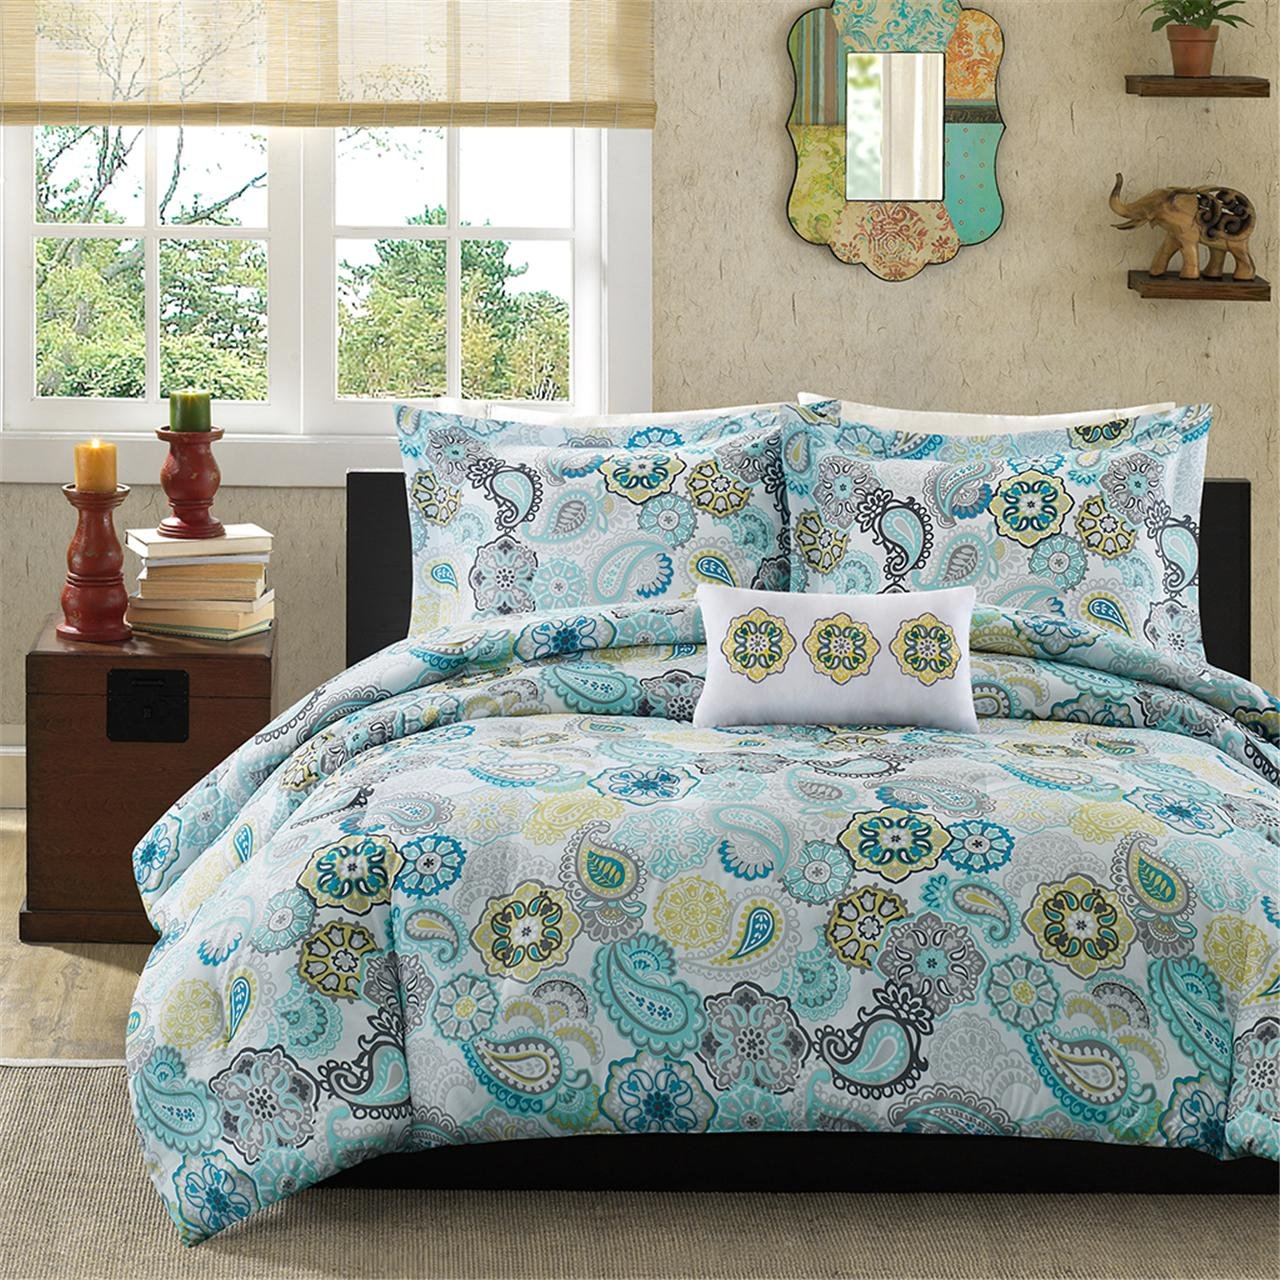 Wonderful Comrforter set light of paisley comforter with pillows and unique sidetable and nightlamps